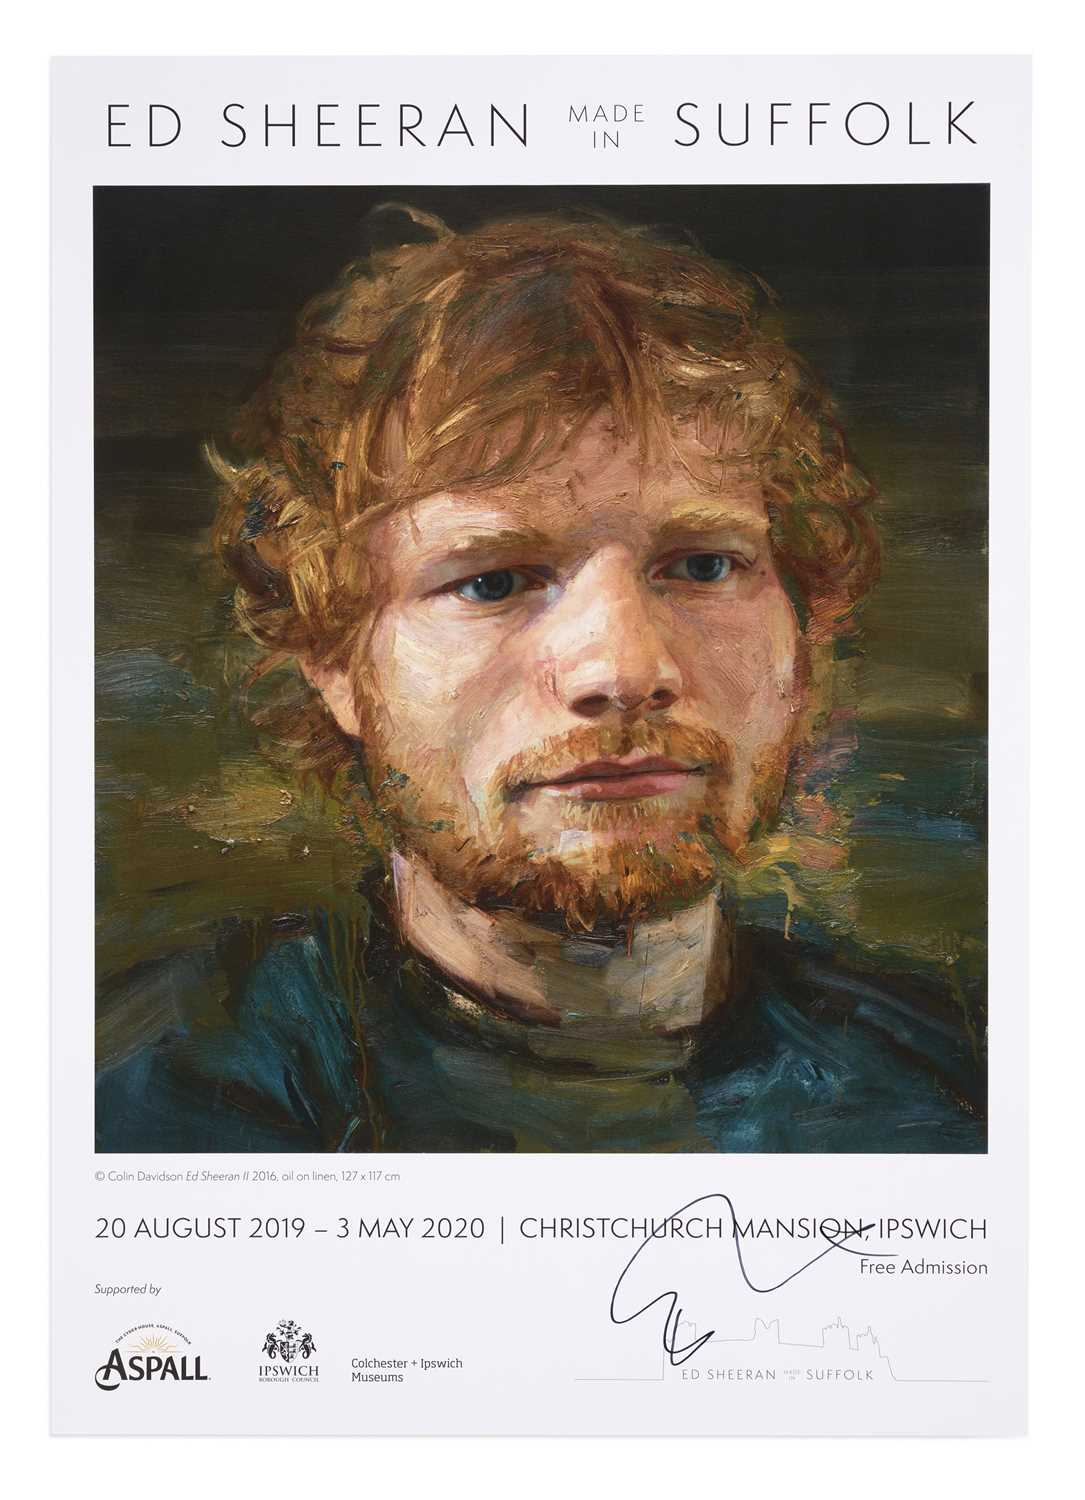 Signed Ed Sheeran: Made in Suffolk Exhibition Poster 2019 This is the official Ed Sheeran: Made in